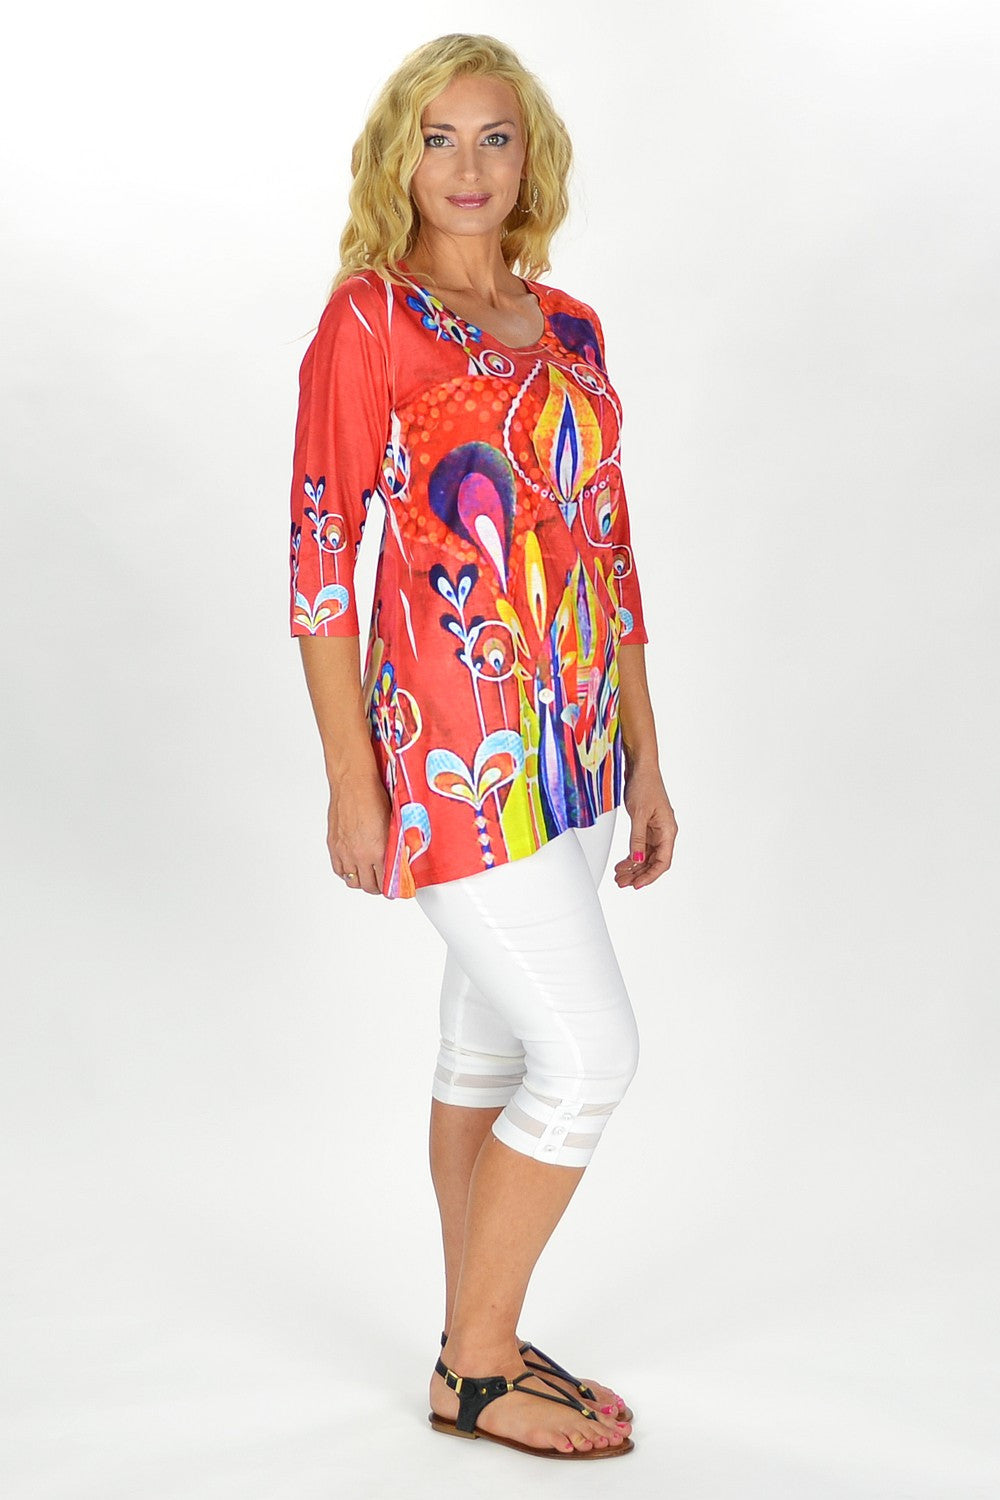 70's Throwback Tunic | I Love Tunics | Tunic Tops | Tunic Dresses | Women's Tops | Plus Size Australia | Mature Fashion